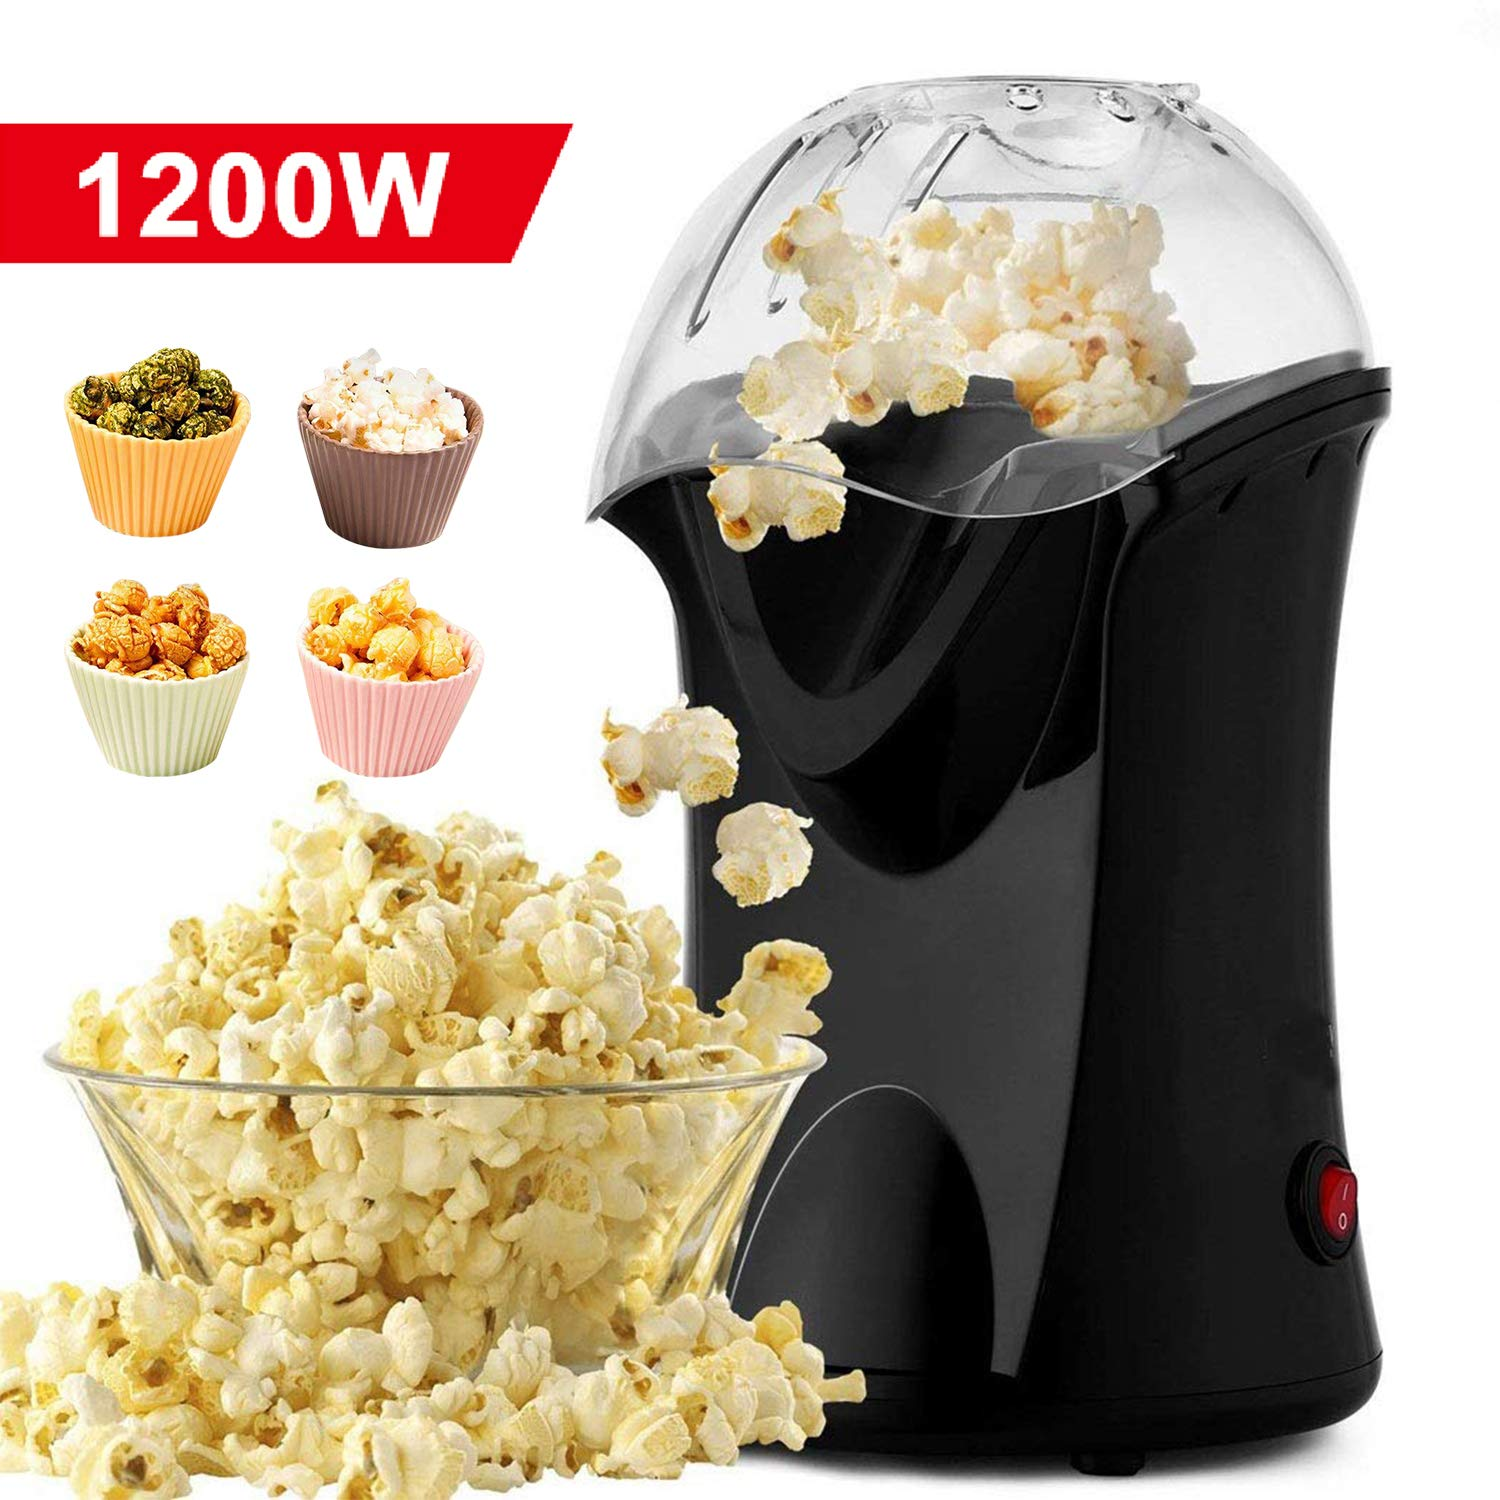 Homdox Hot Air Popper Popcorn Maker, 1200W Hot Air Popcorn Popper, Electric Popcorn Machine with Removable Lid for Home Use, No Oil Needed, Great for Kids (Black/1200W) by Homdox